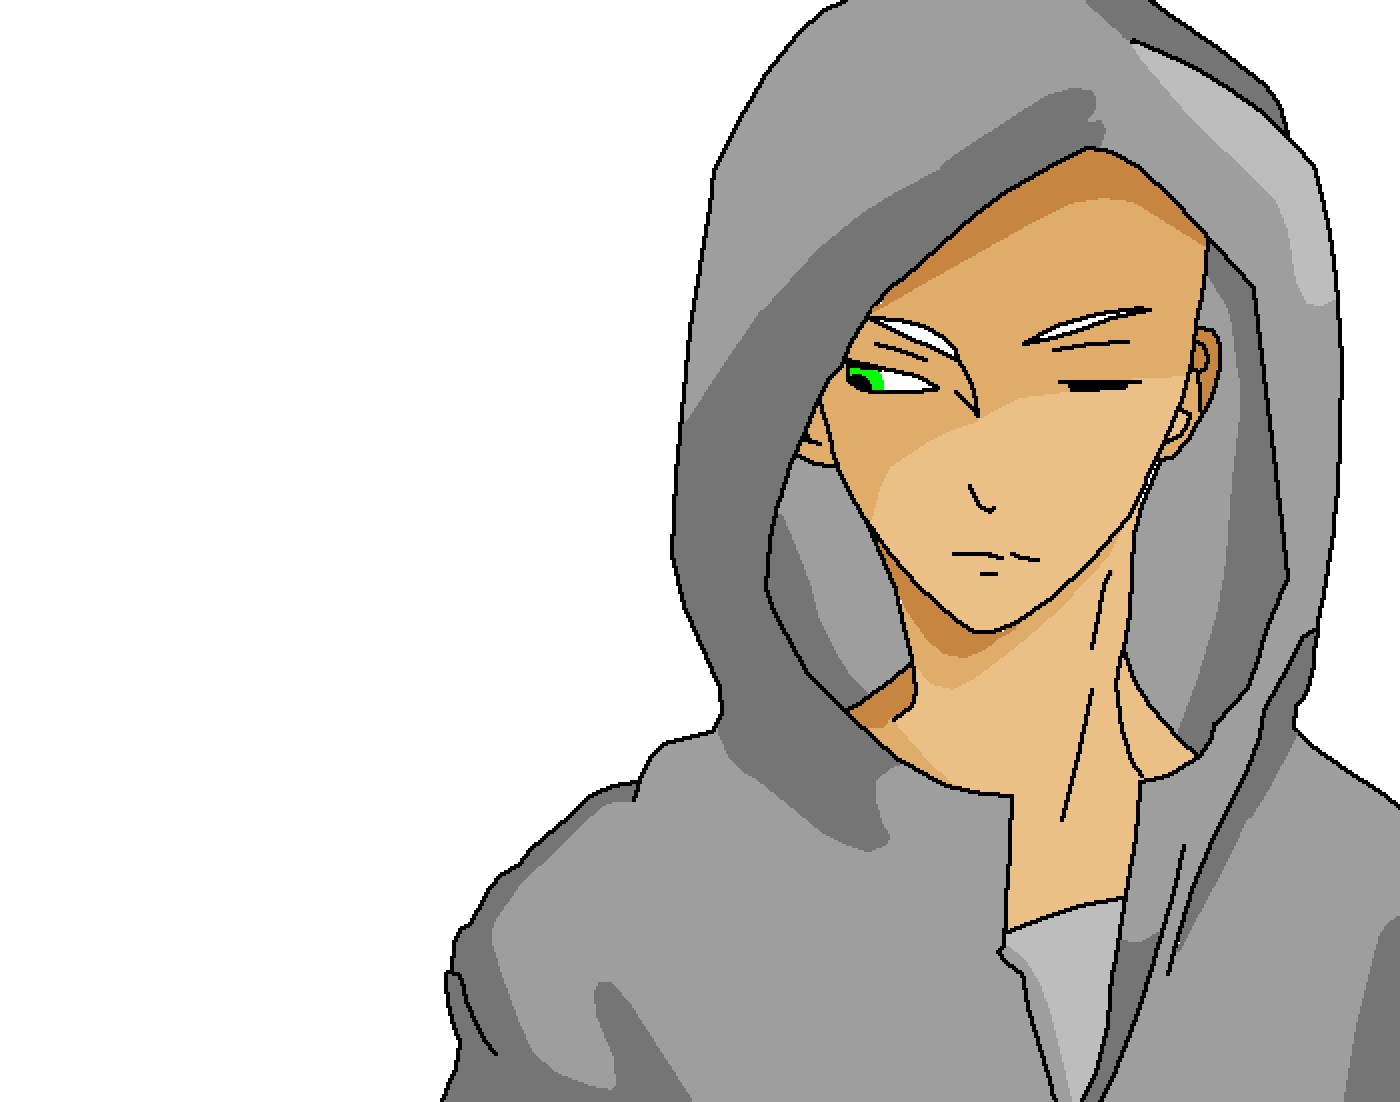 Hooded drawing boy. Pixilart base by booshblast